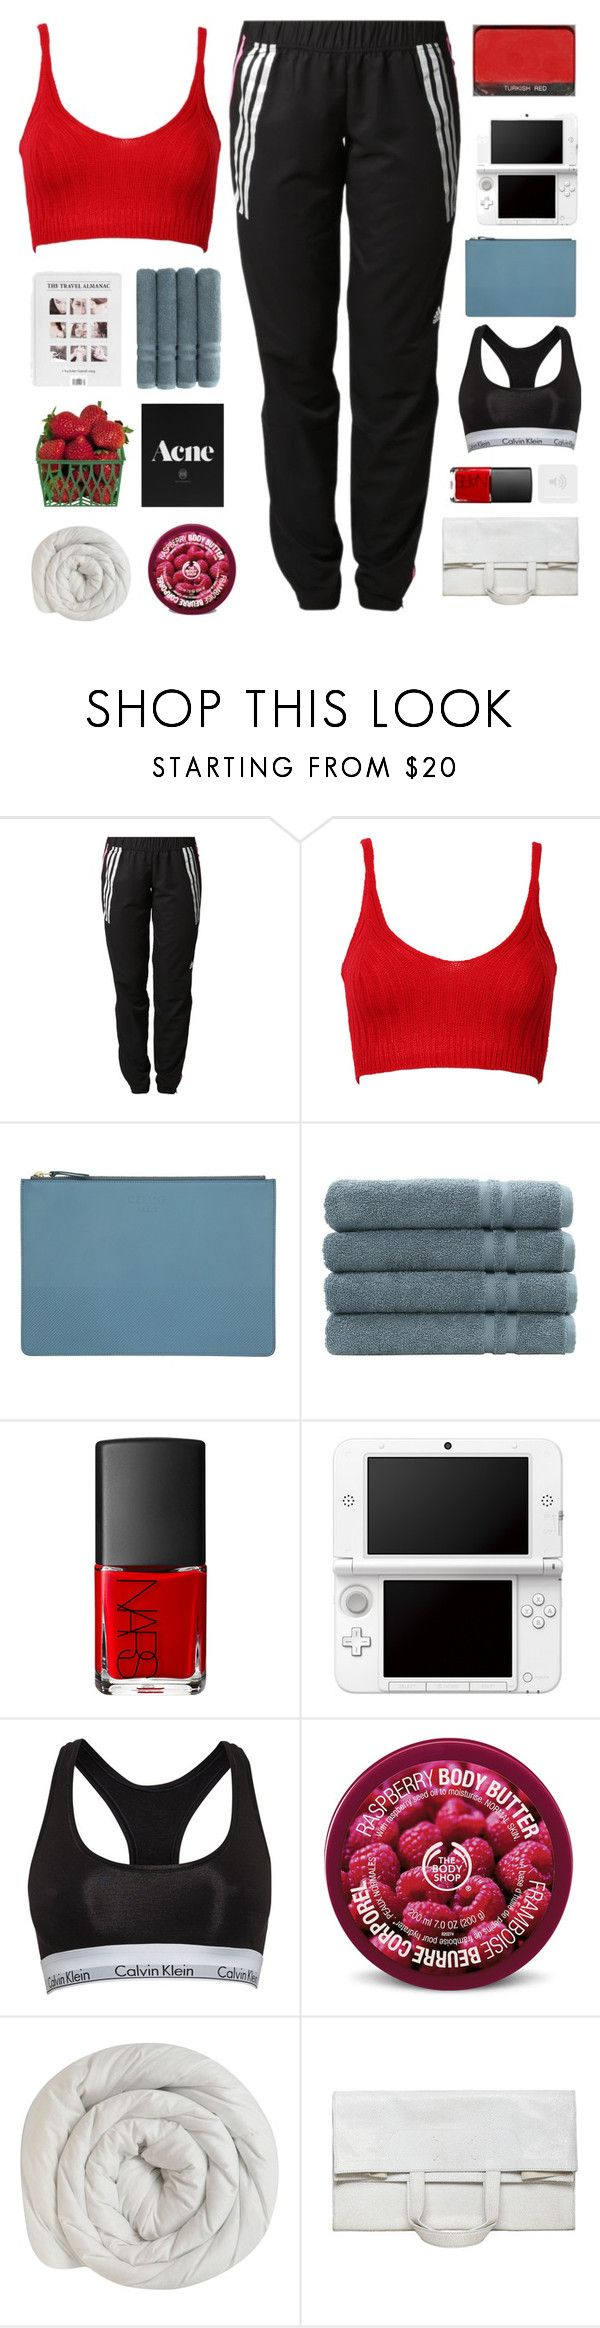 """#80"" by stellular ❤ liked on Polyvore featuring adidas, WithChic, AG Adriano Goldschmied, CÉLINE, Linum Home Textiles, NARS Cosmetics, Nintendo, Calvin Klein, The Body Shop and Maison Margiela"